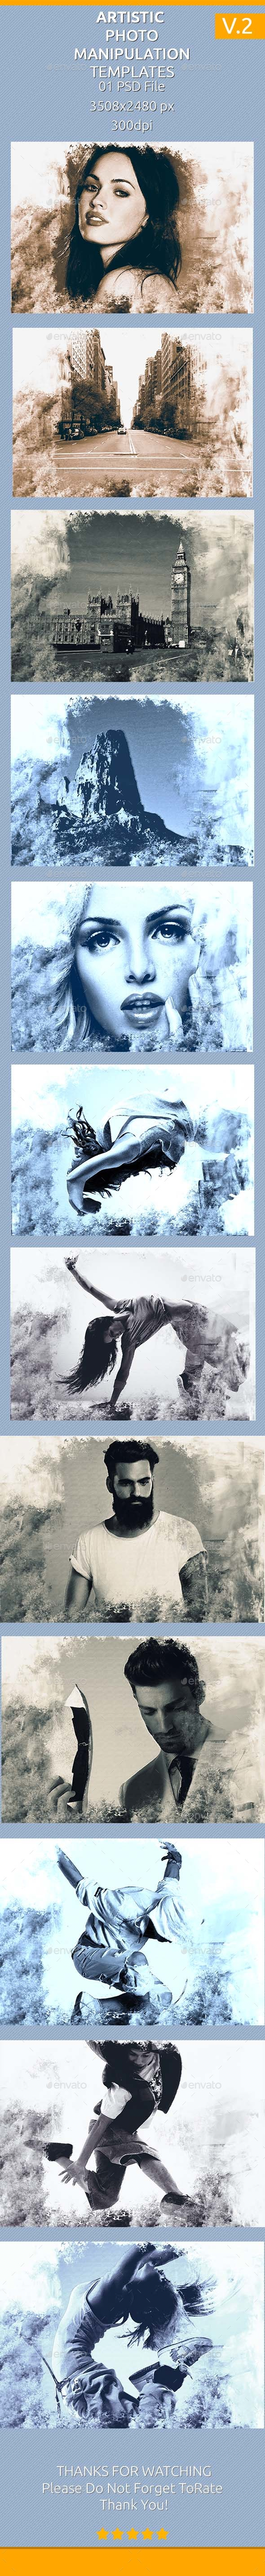 Artistic Photo Manipulation (Artistic)